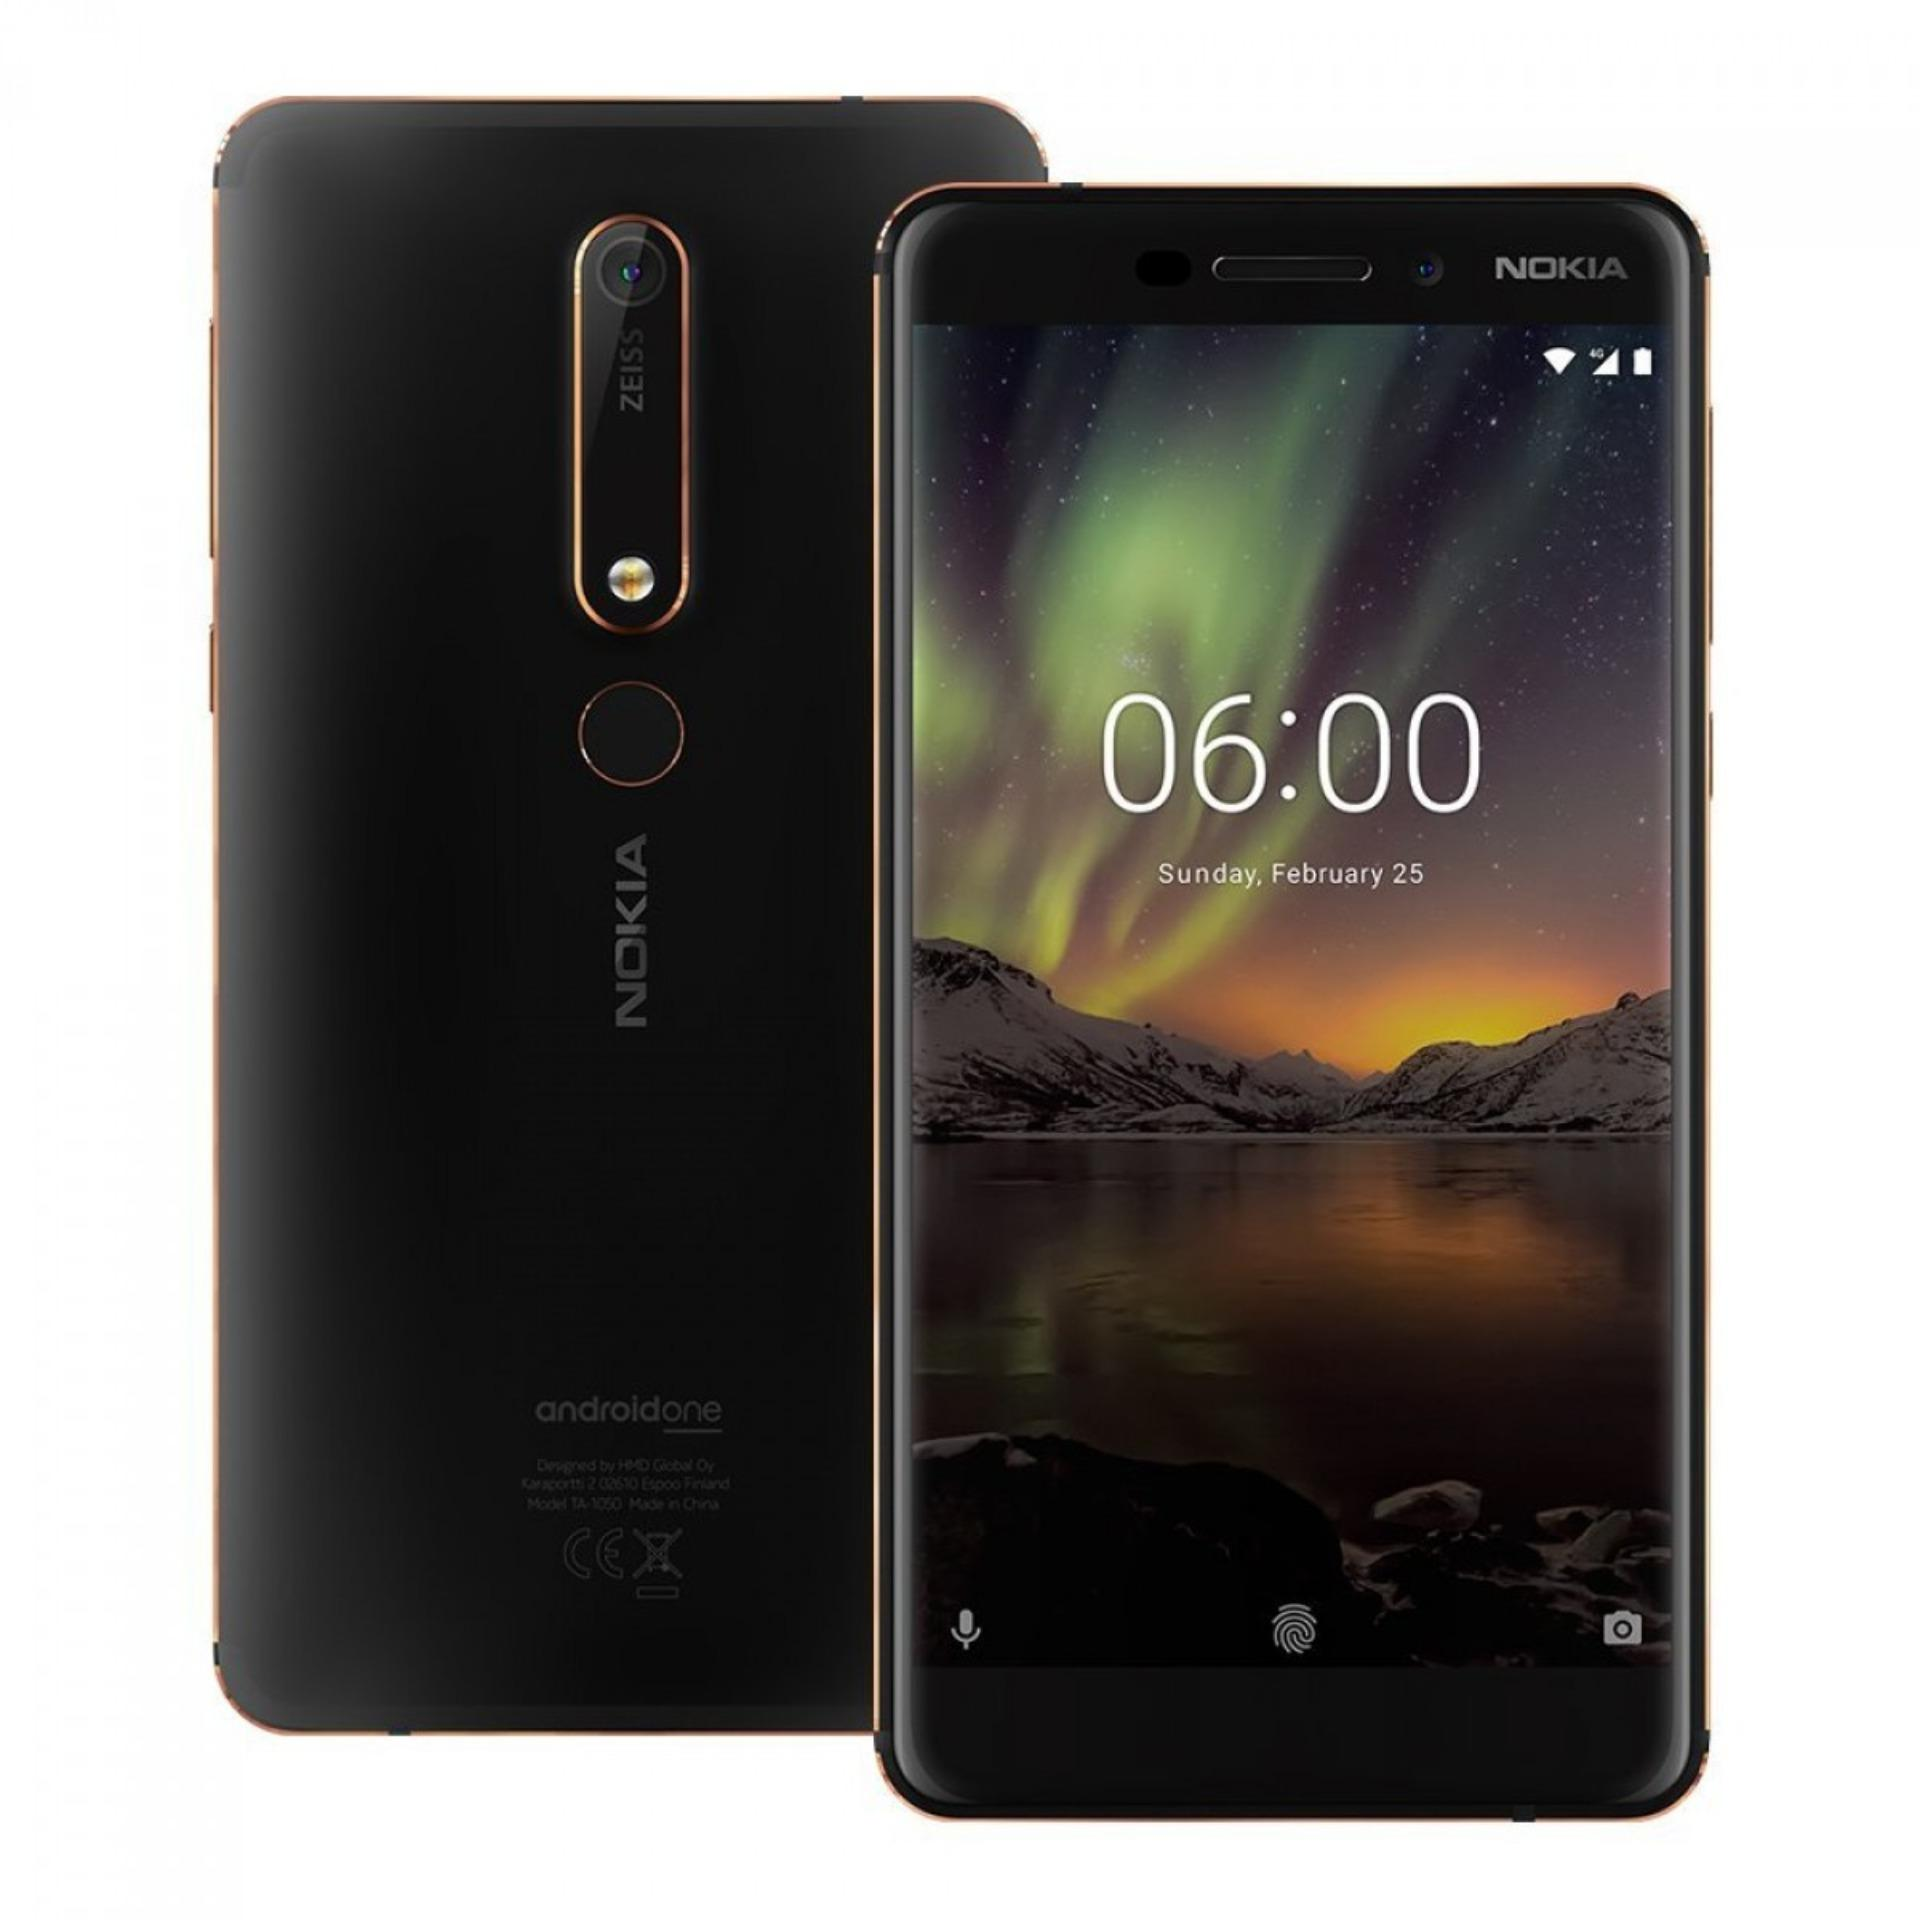 Buy Nokia Mobiles Online Cheap Prices In Pakistan Circuit Board From A 3310 Mobile Phone Stock Photo Picture And 61 2018 55 3gb Ram 32g Rom 16mp Camera Dual